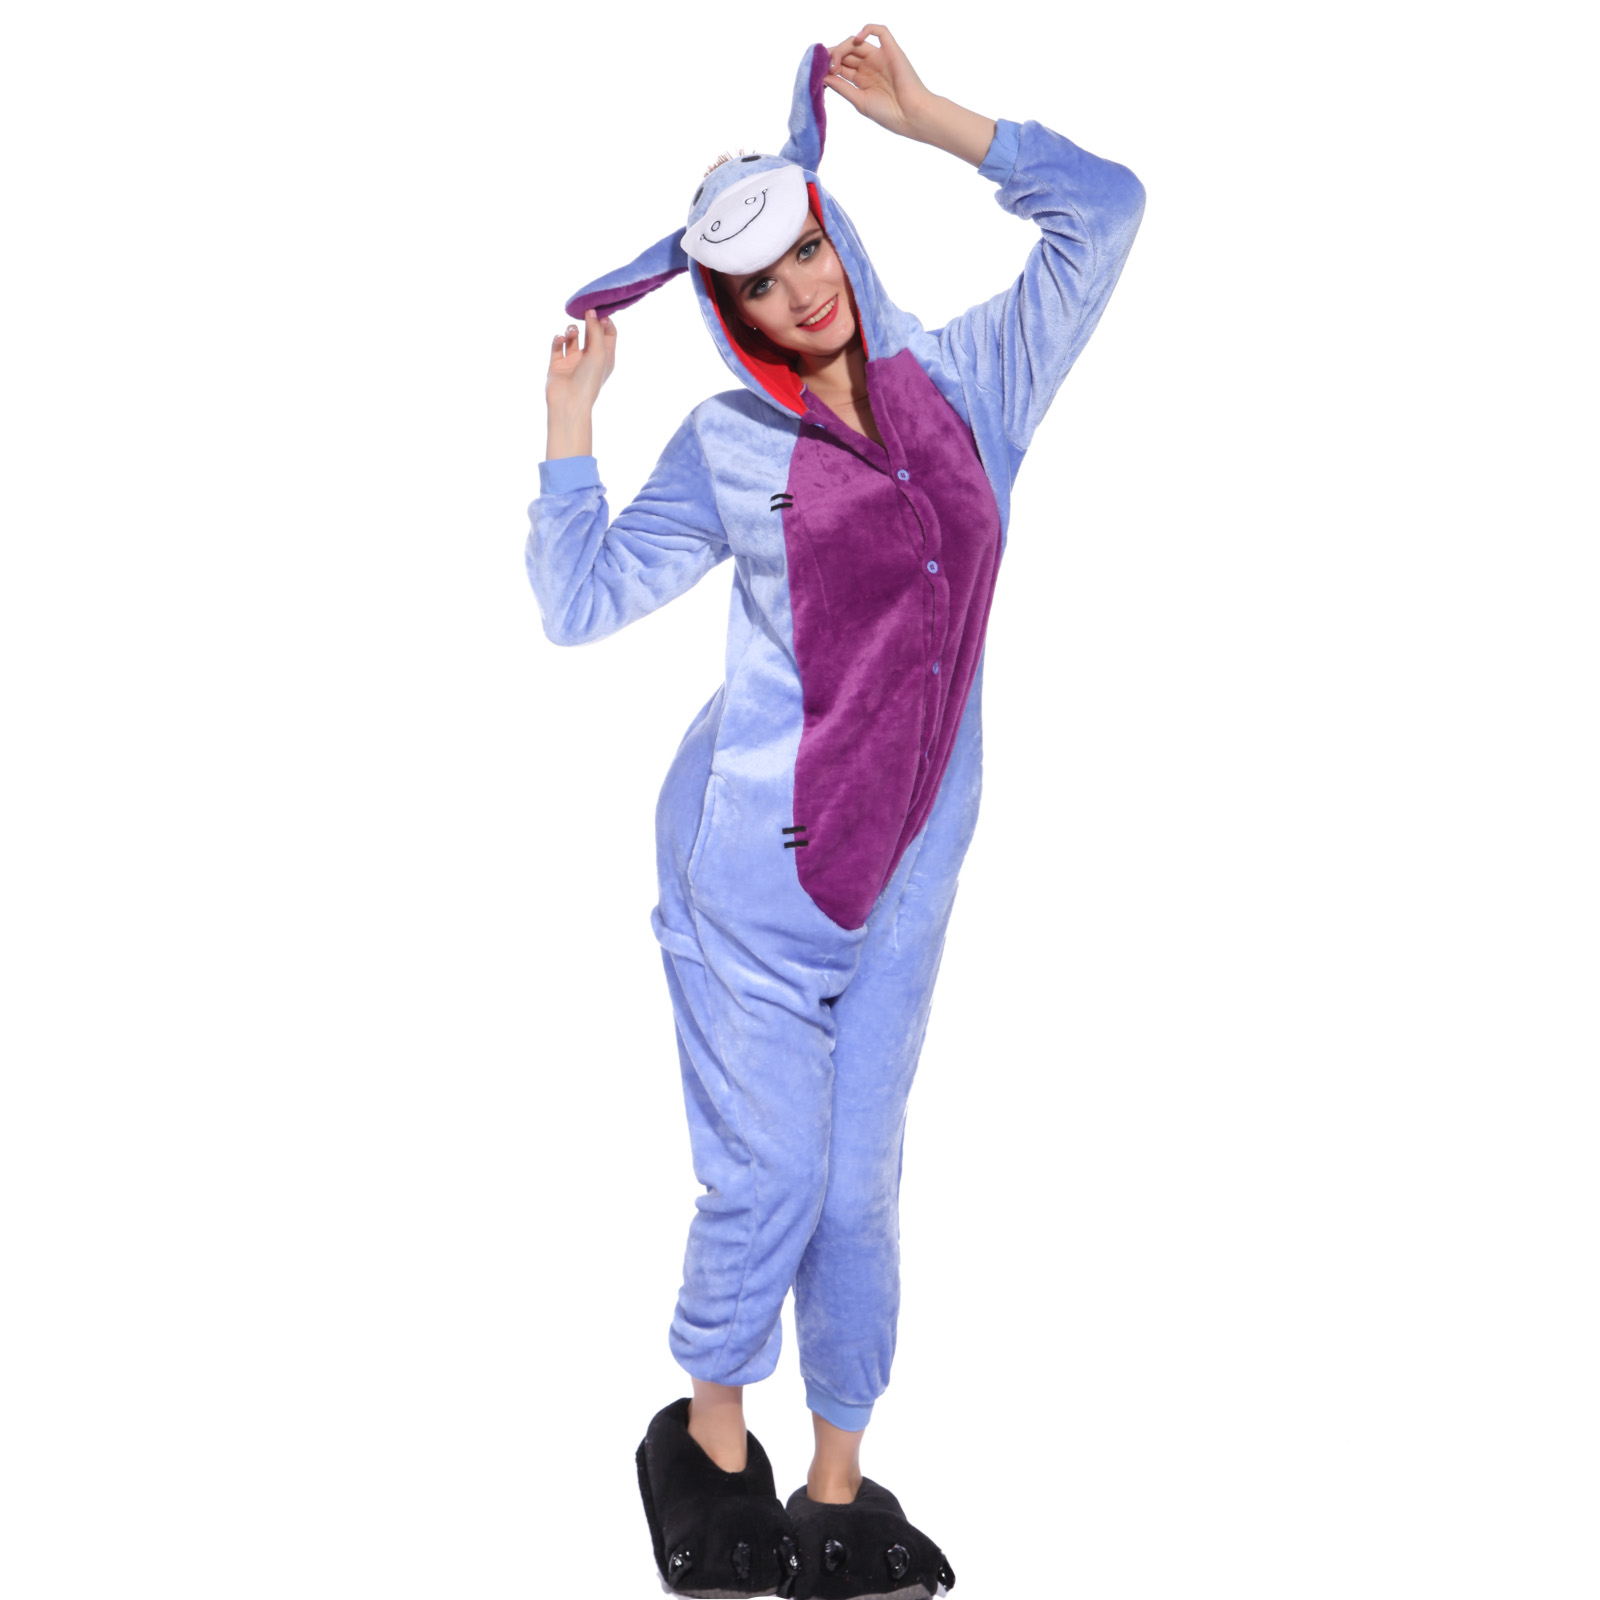 hot unisex adult pajamas kigurumi cosplay costume animal. Black Bedroom Furniture Sets. Home Design Ideas